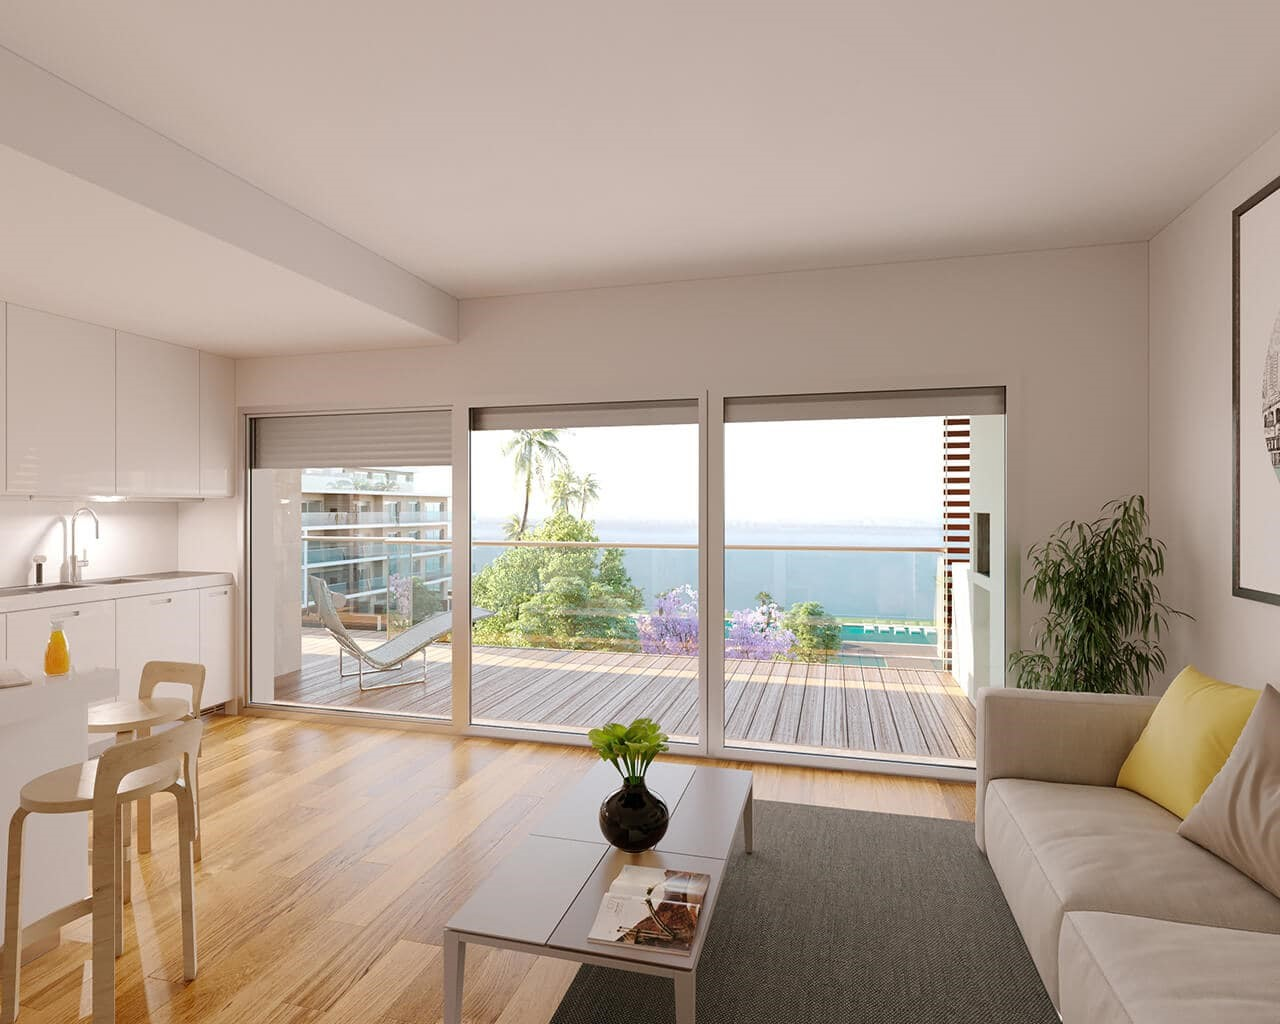 Tagus Bay - kitchen living room terrace